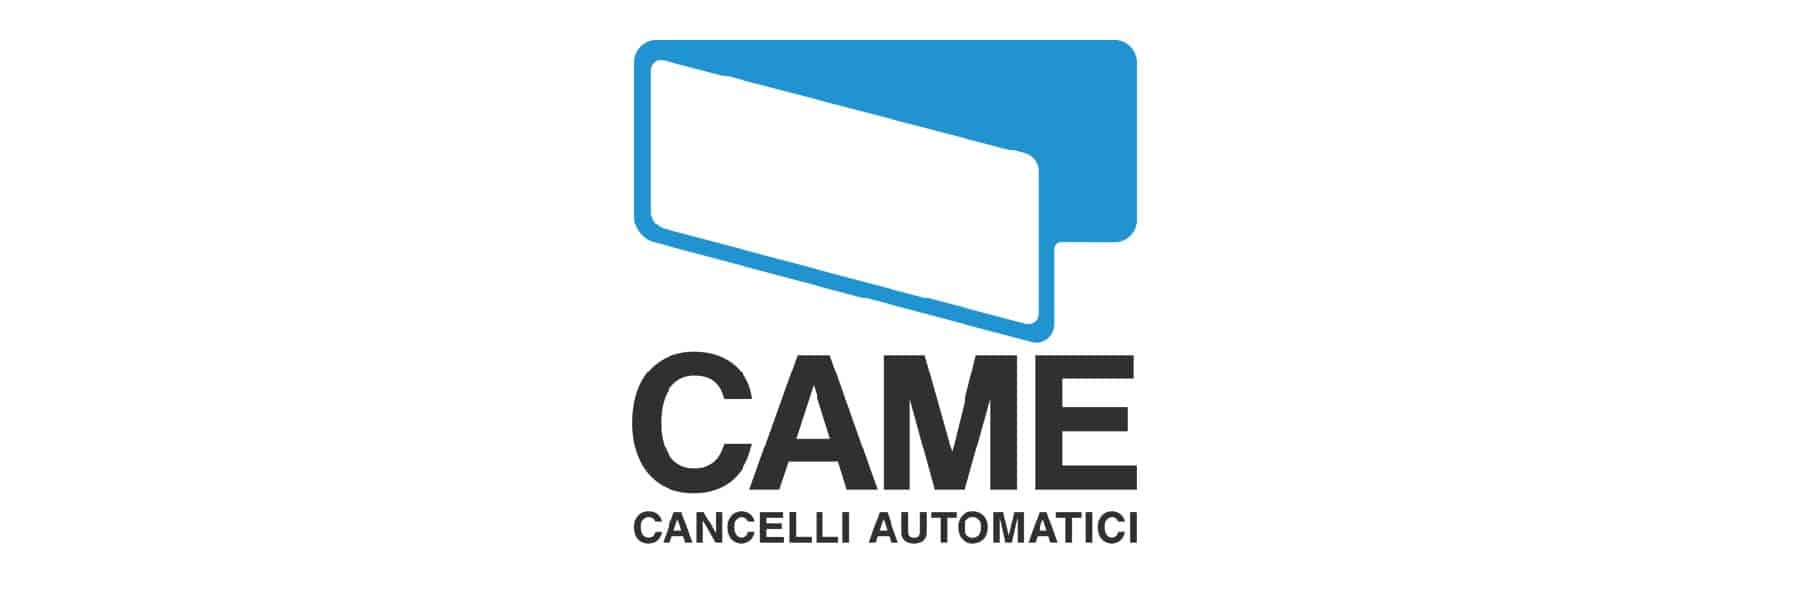 came cancelli automatici